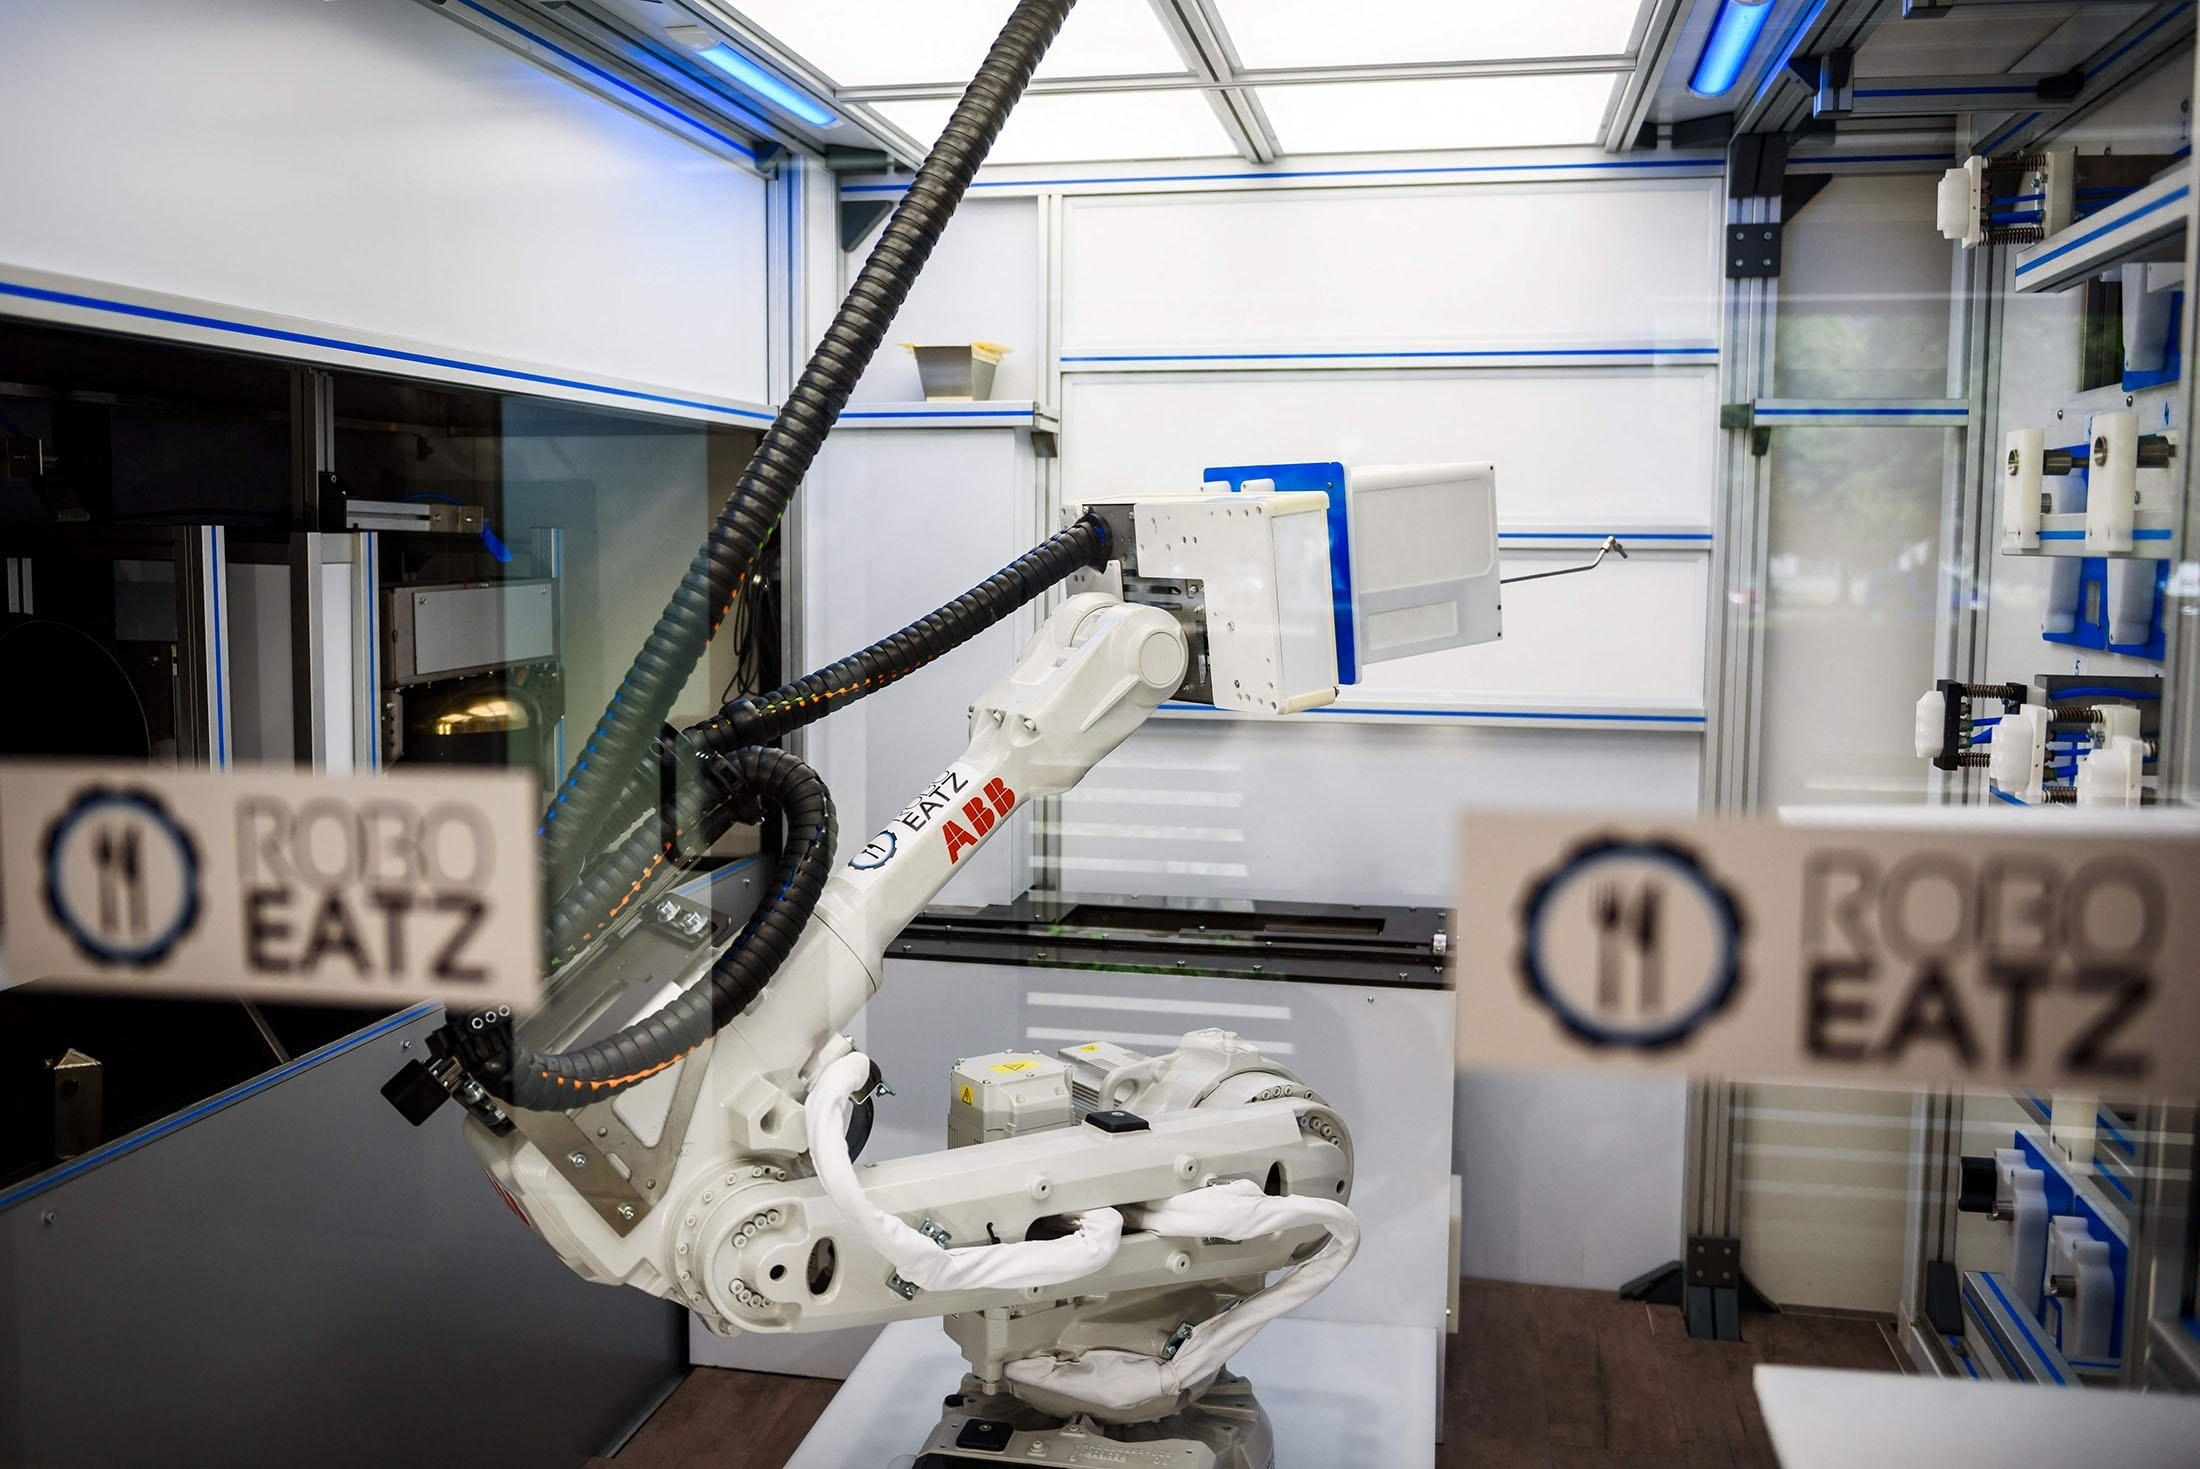 A robot can be seen behind glass as it prepares food at the Roboeatz eatery in Riga, Latvia, May 25, 2021. (AFP Photo)